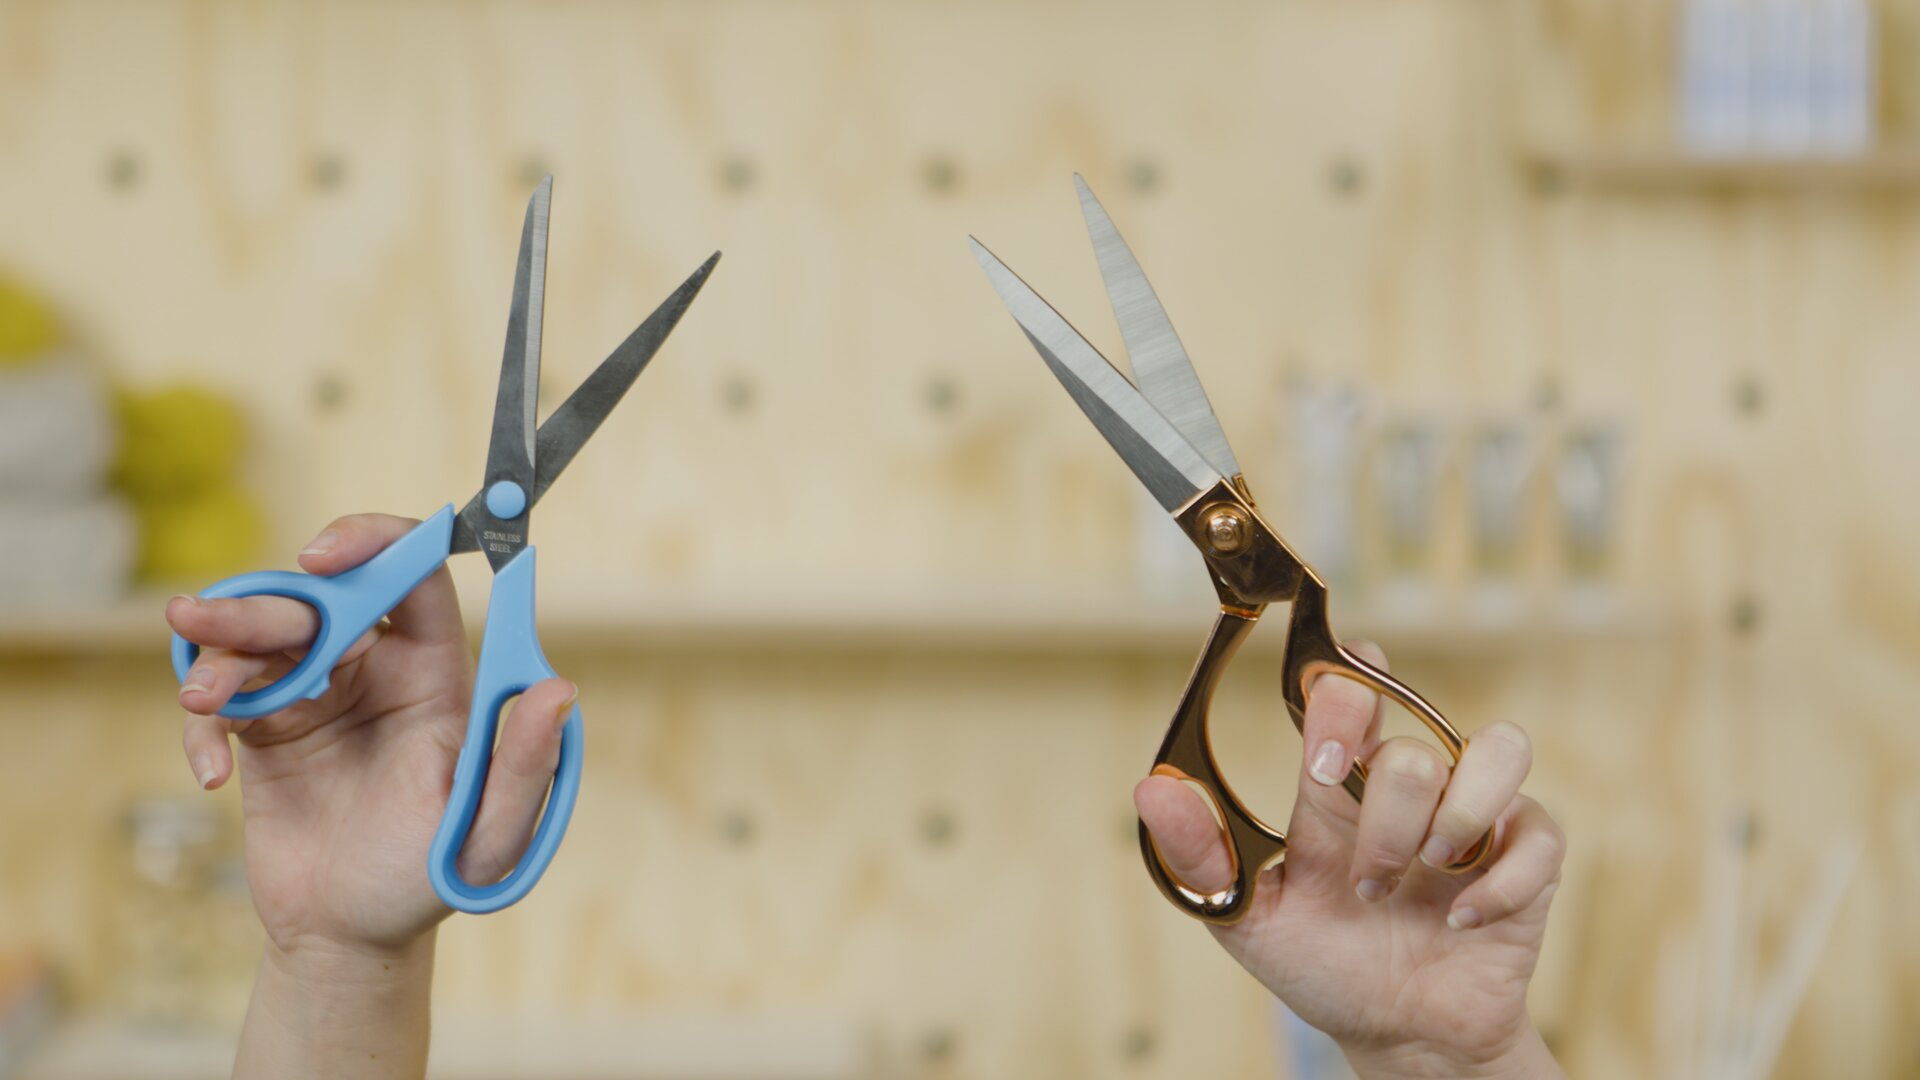 Scissors & Cutting Tools Buying Guide